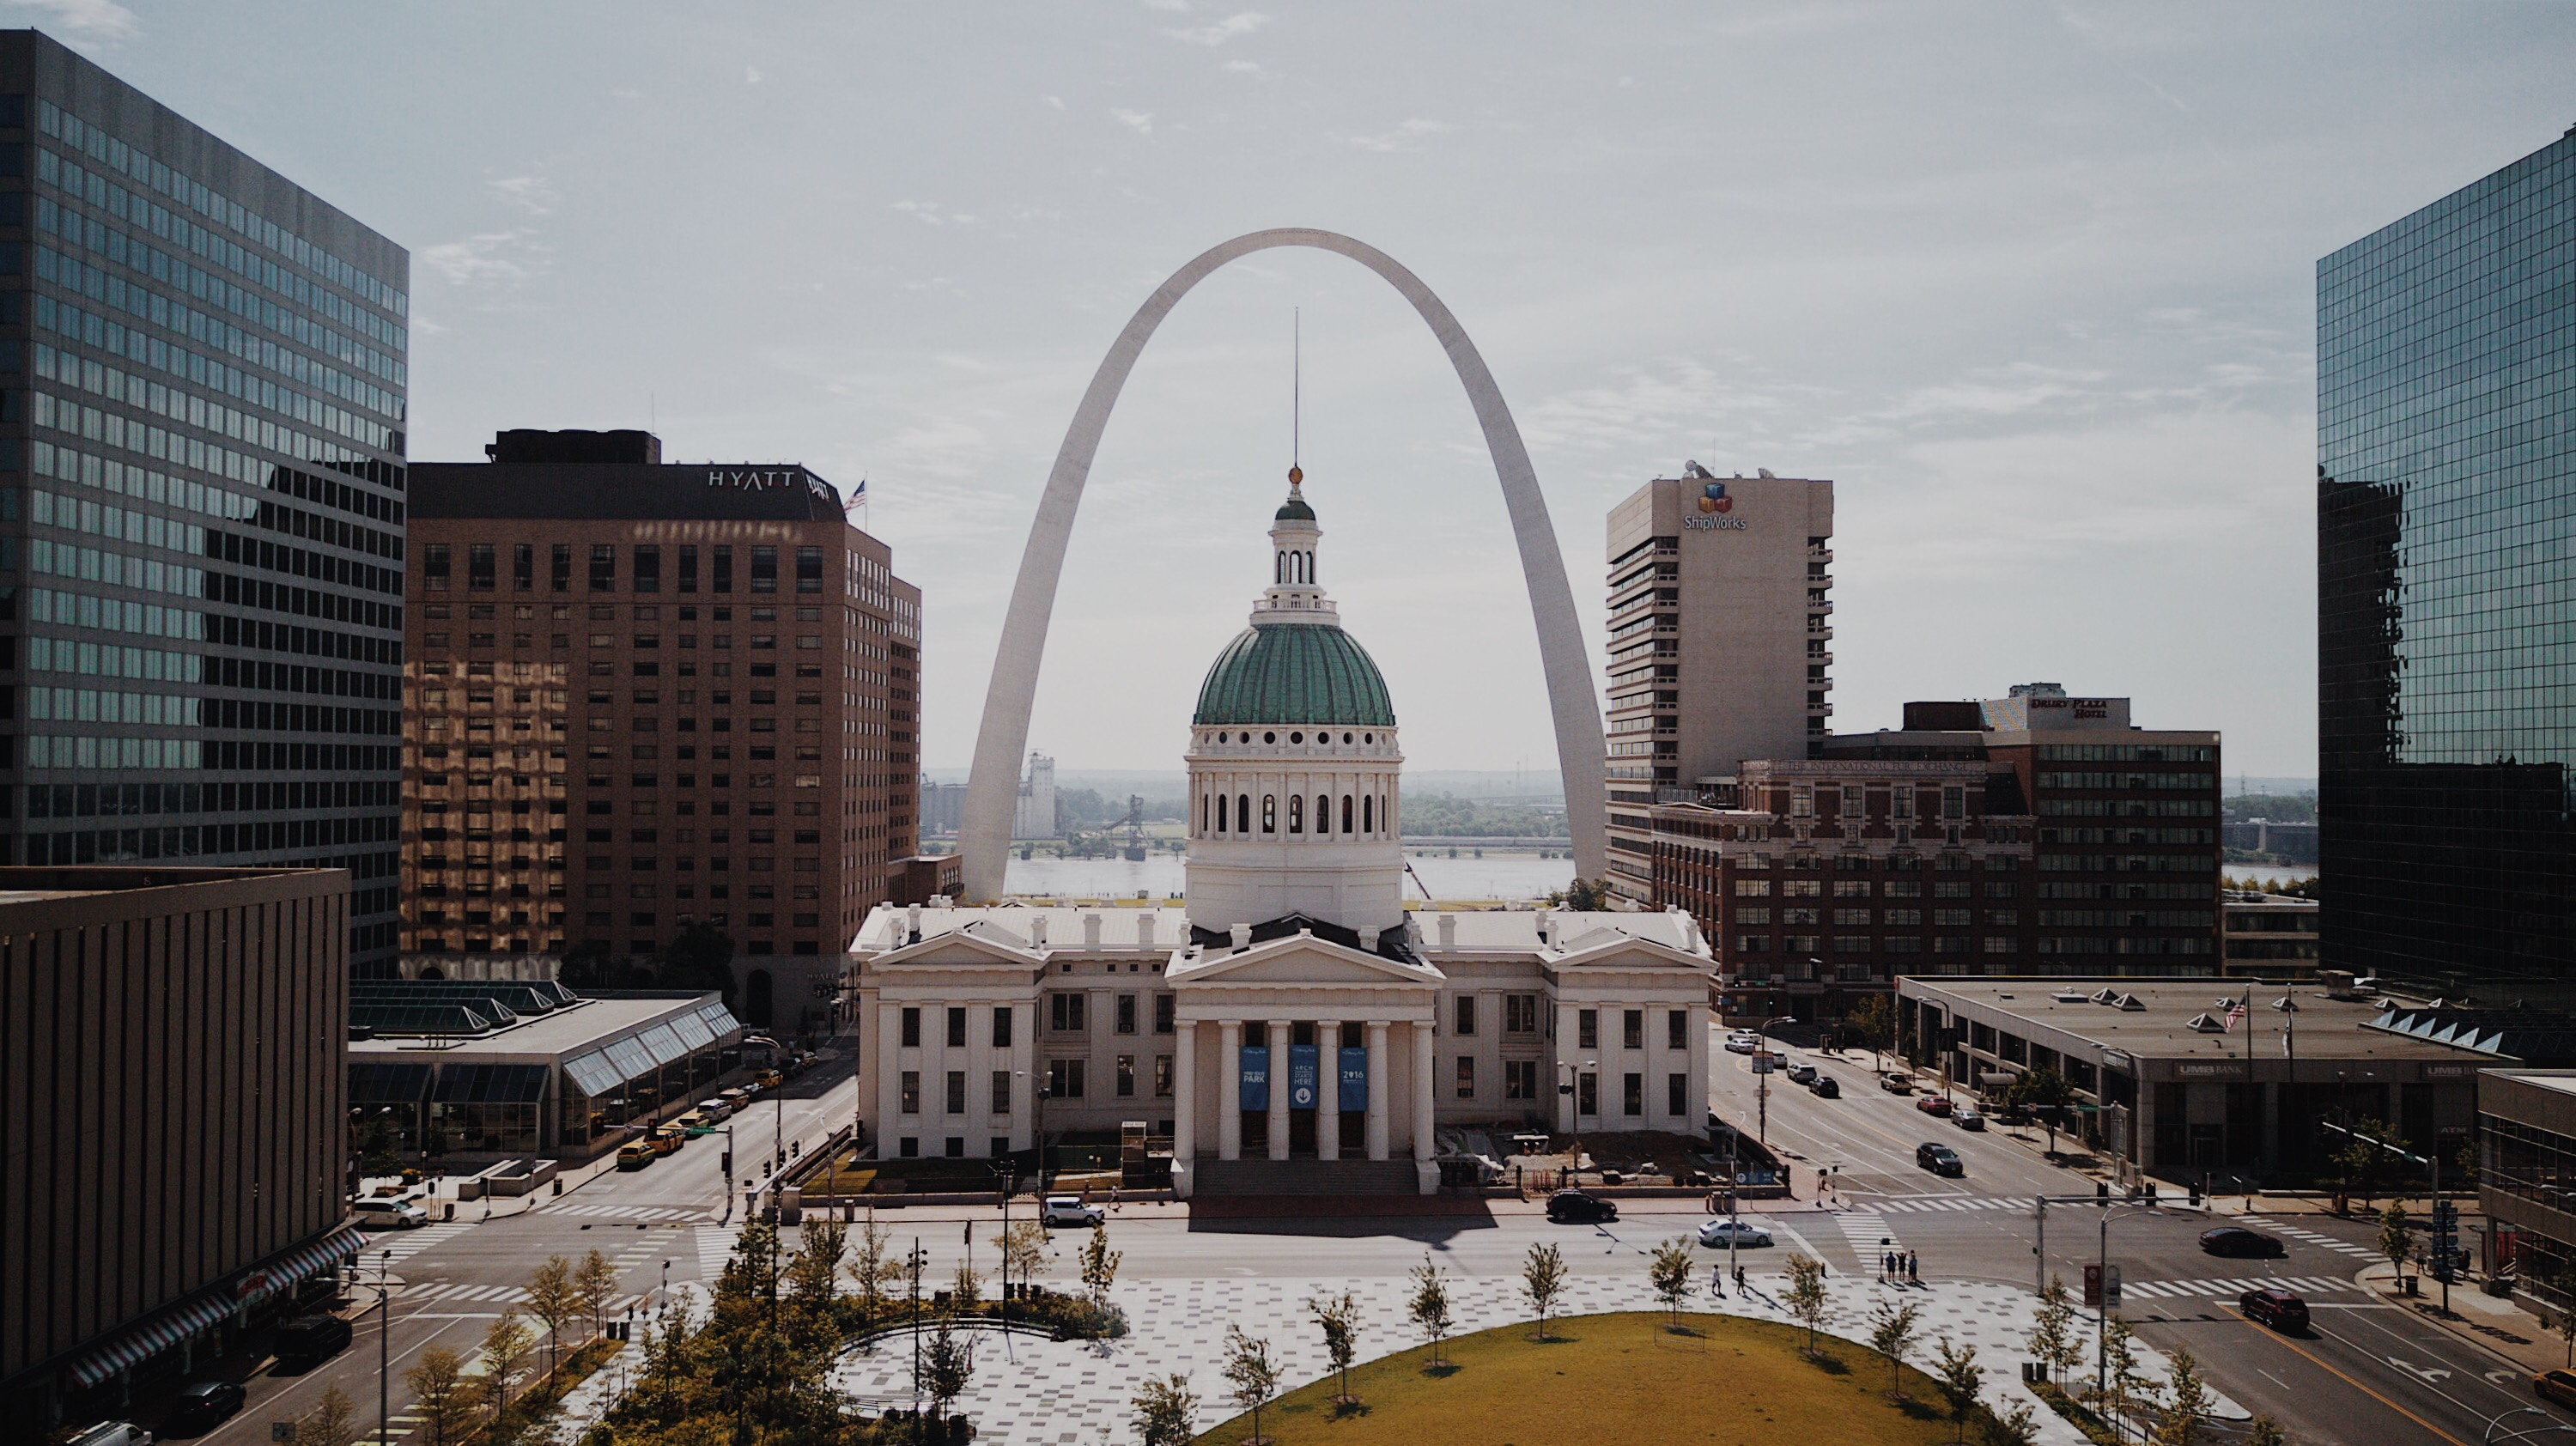 St. Louis background